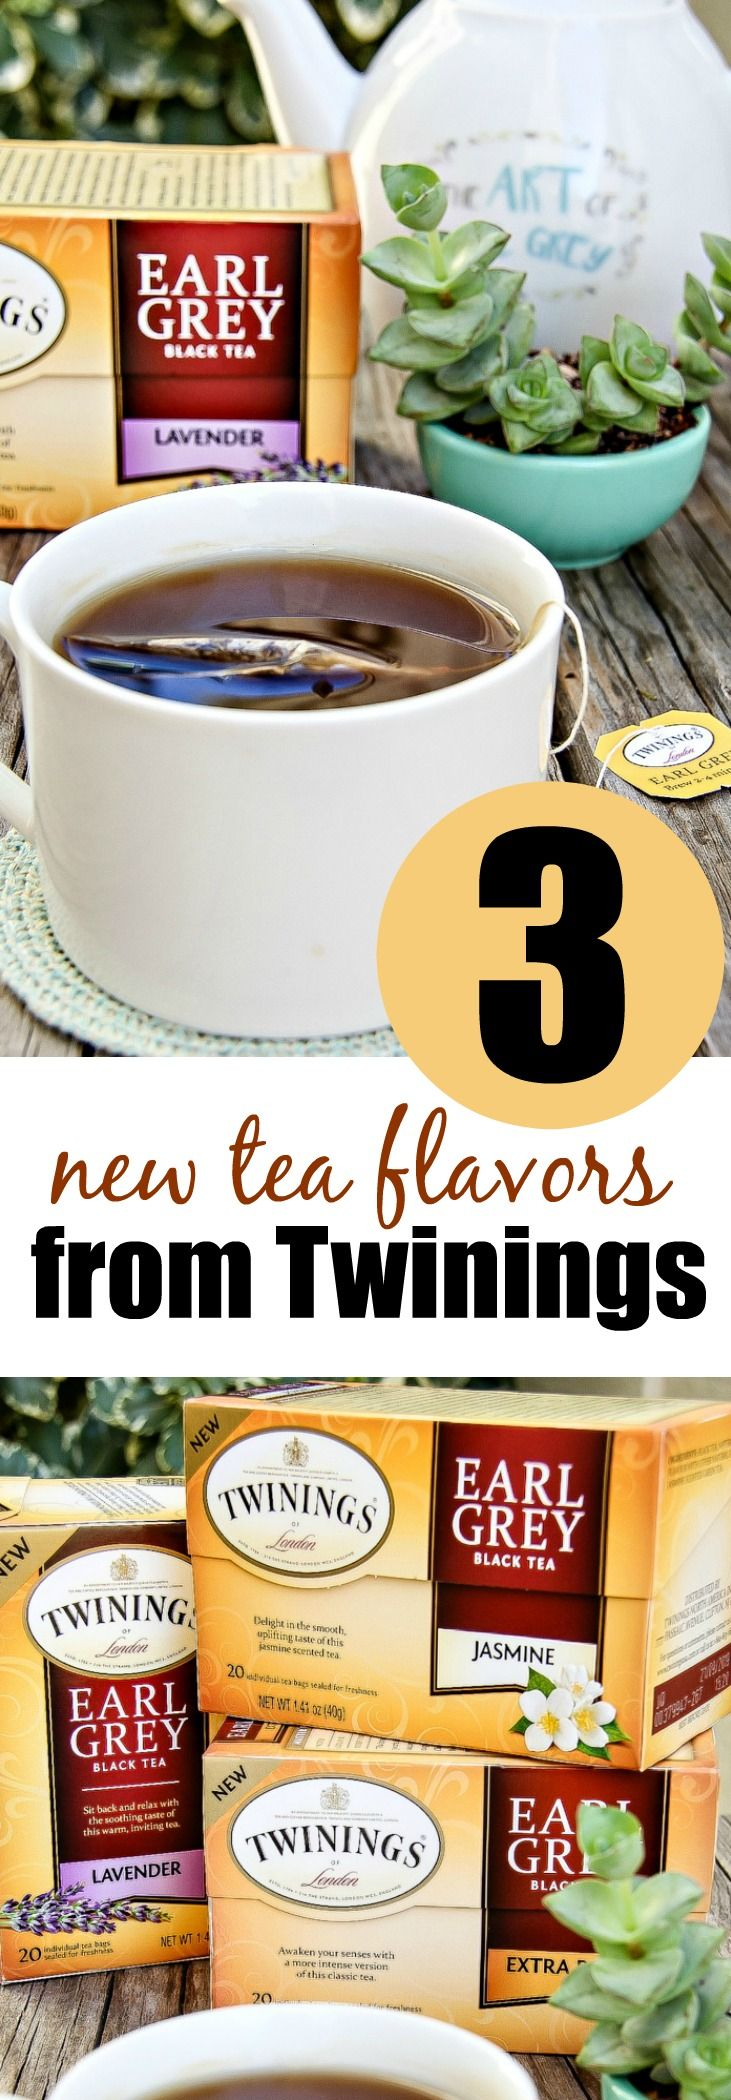 Enjoy the 3 new Earl Grey tea flavors from Twinings including Jasmine, Lavender, and Extra Bold. Sponsored.